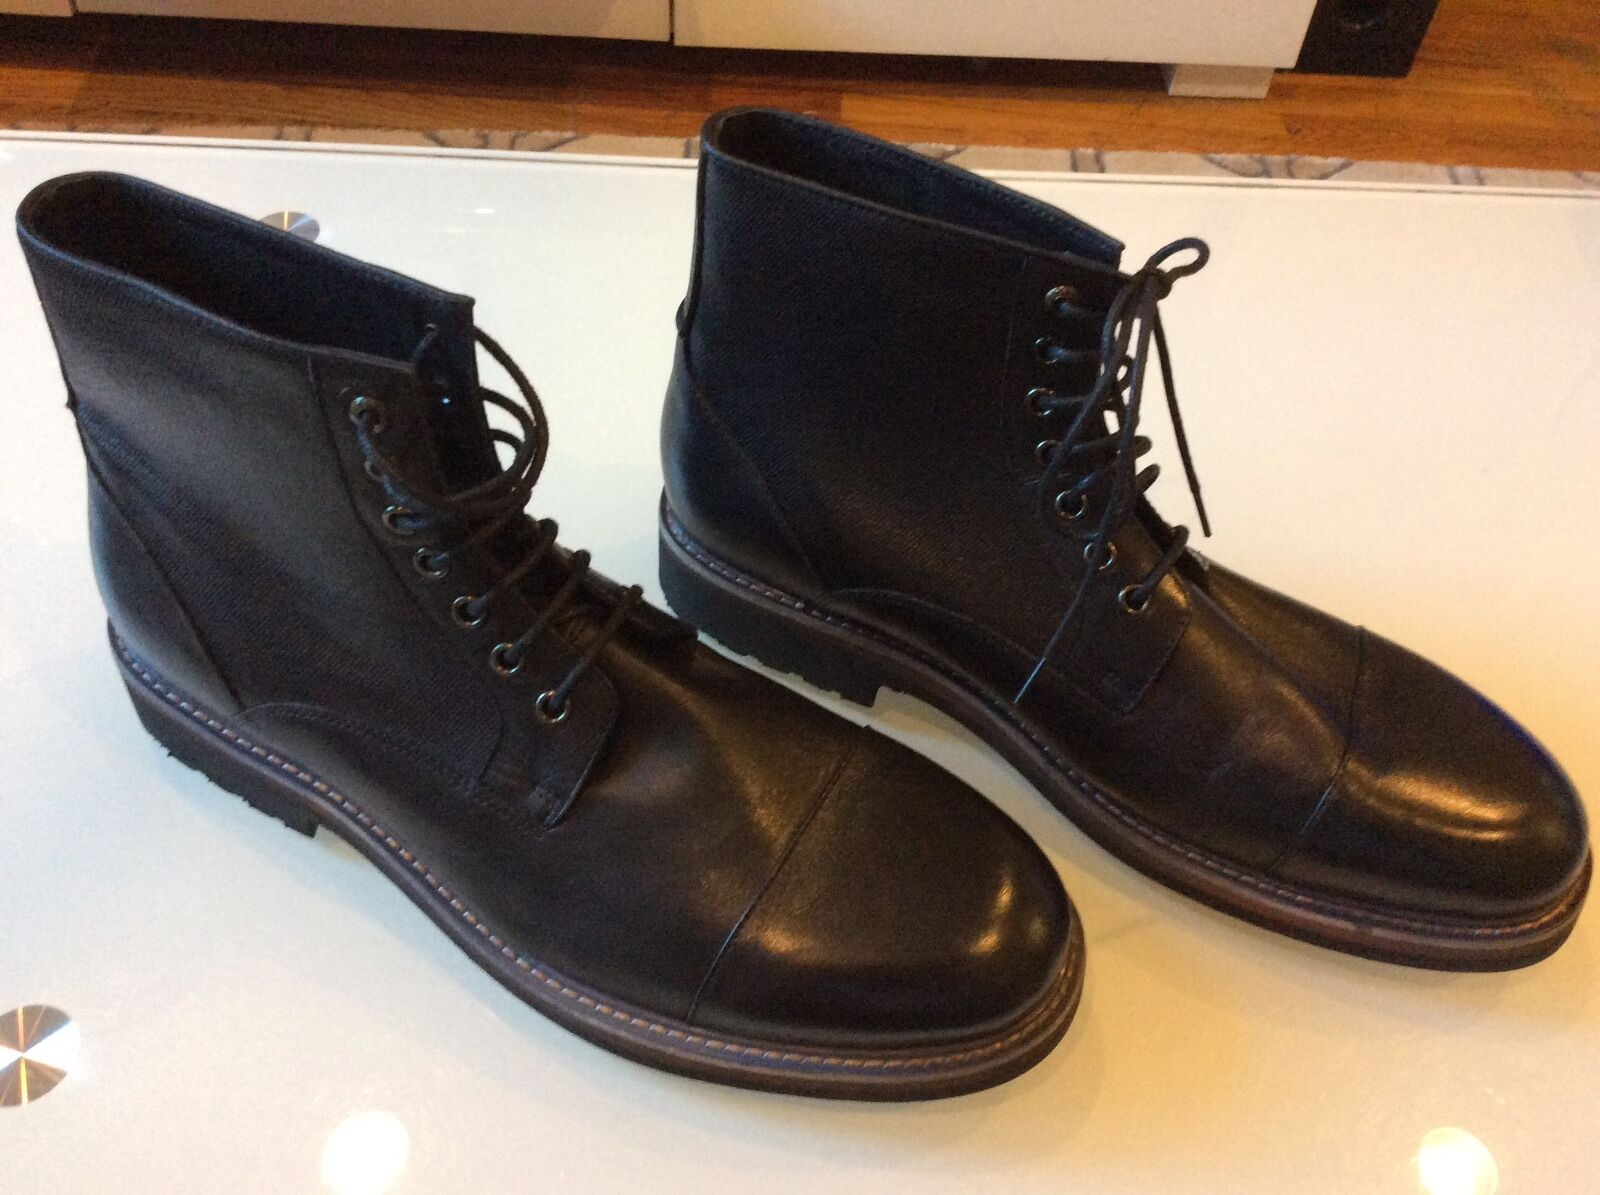 Zanzara Catania Black Round Toe Leather  Boot size 10.5  78.00